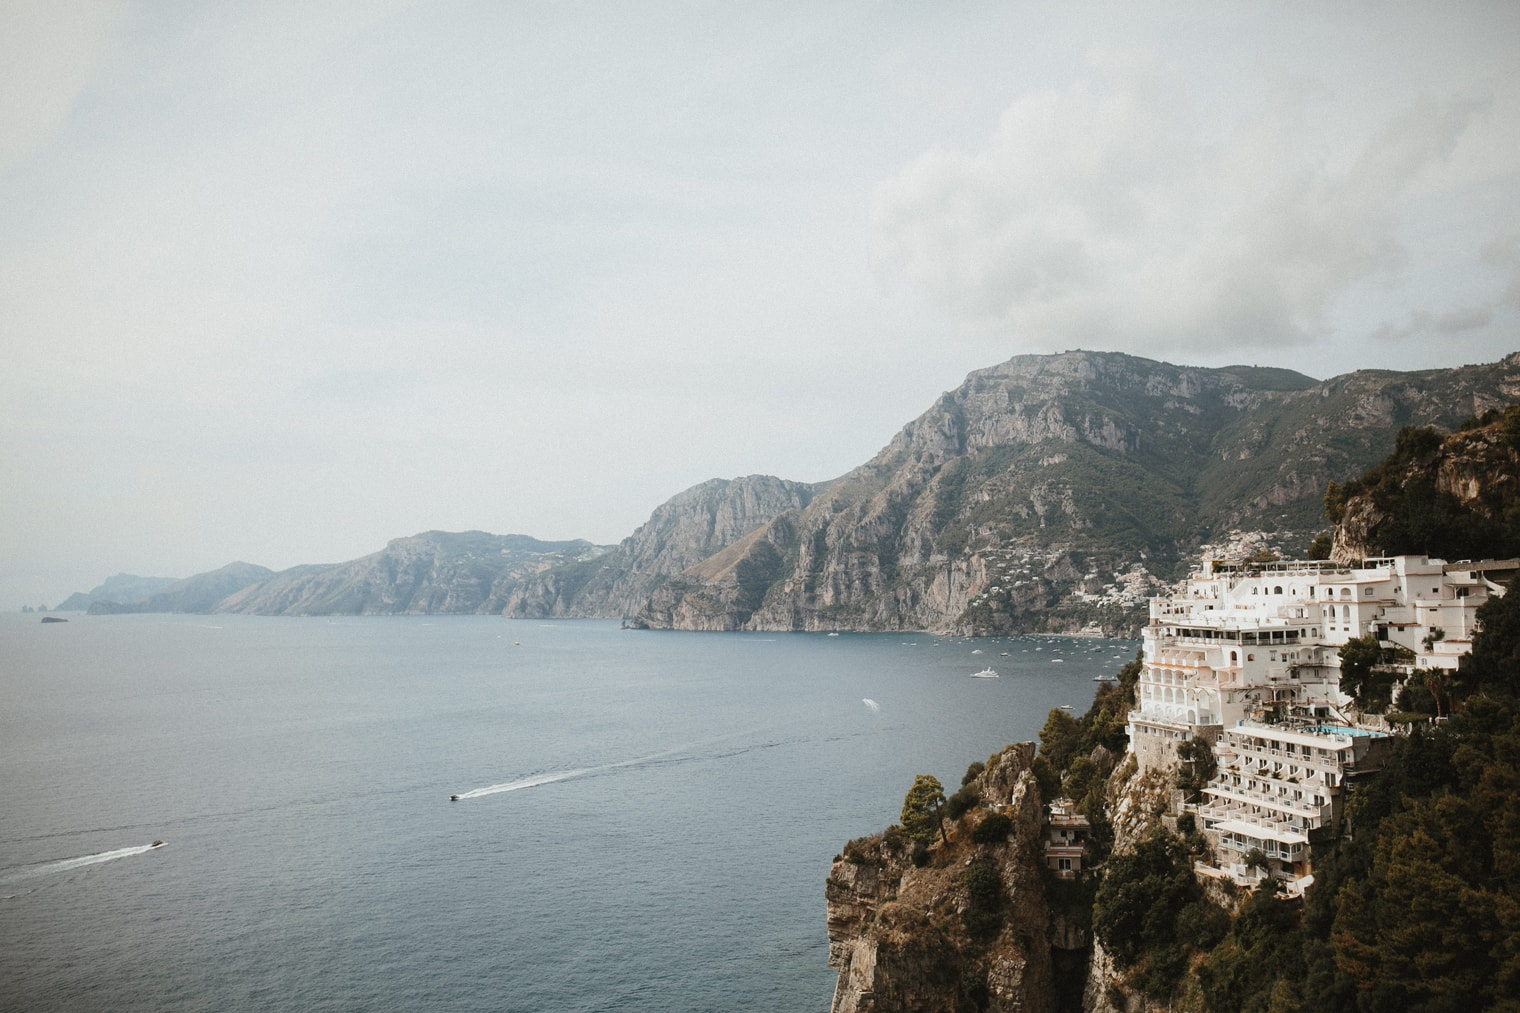 Amalfi Coastline with boats in the water